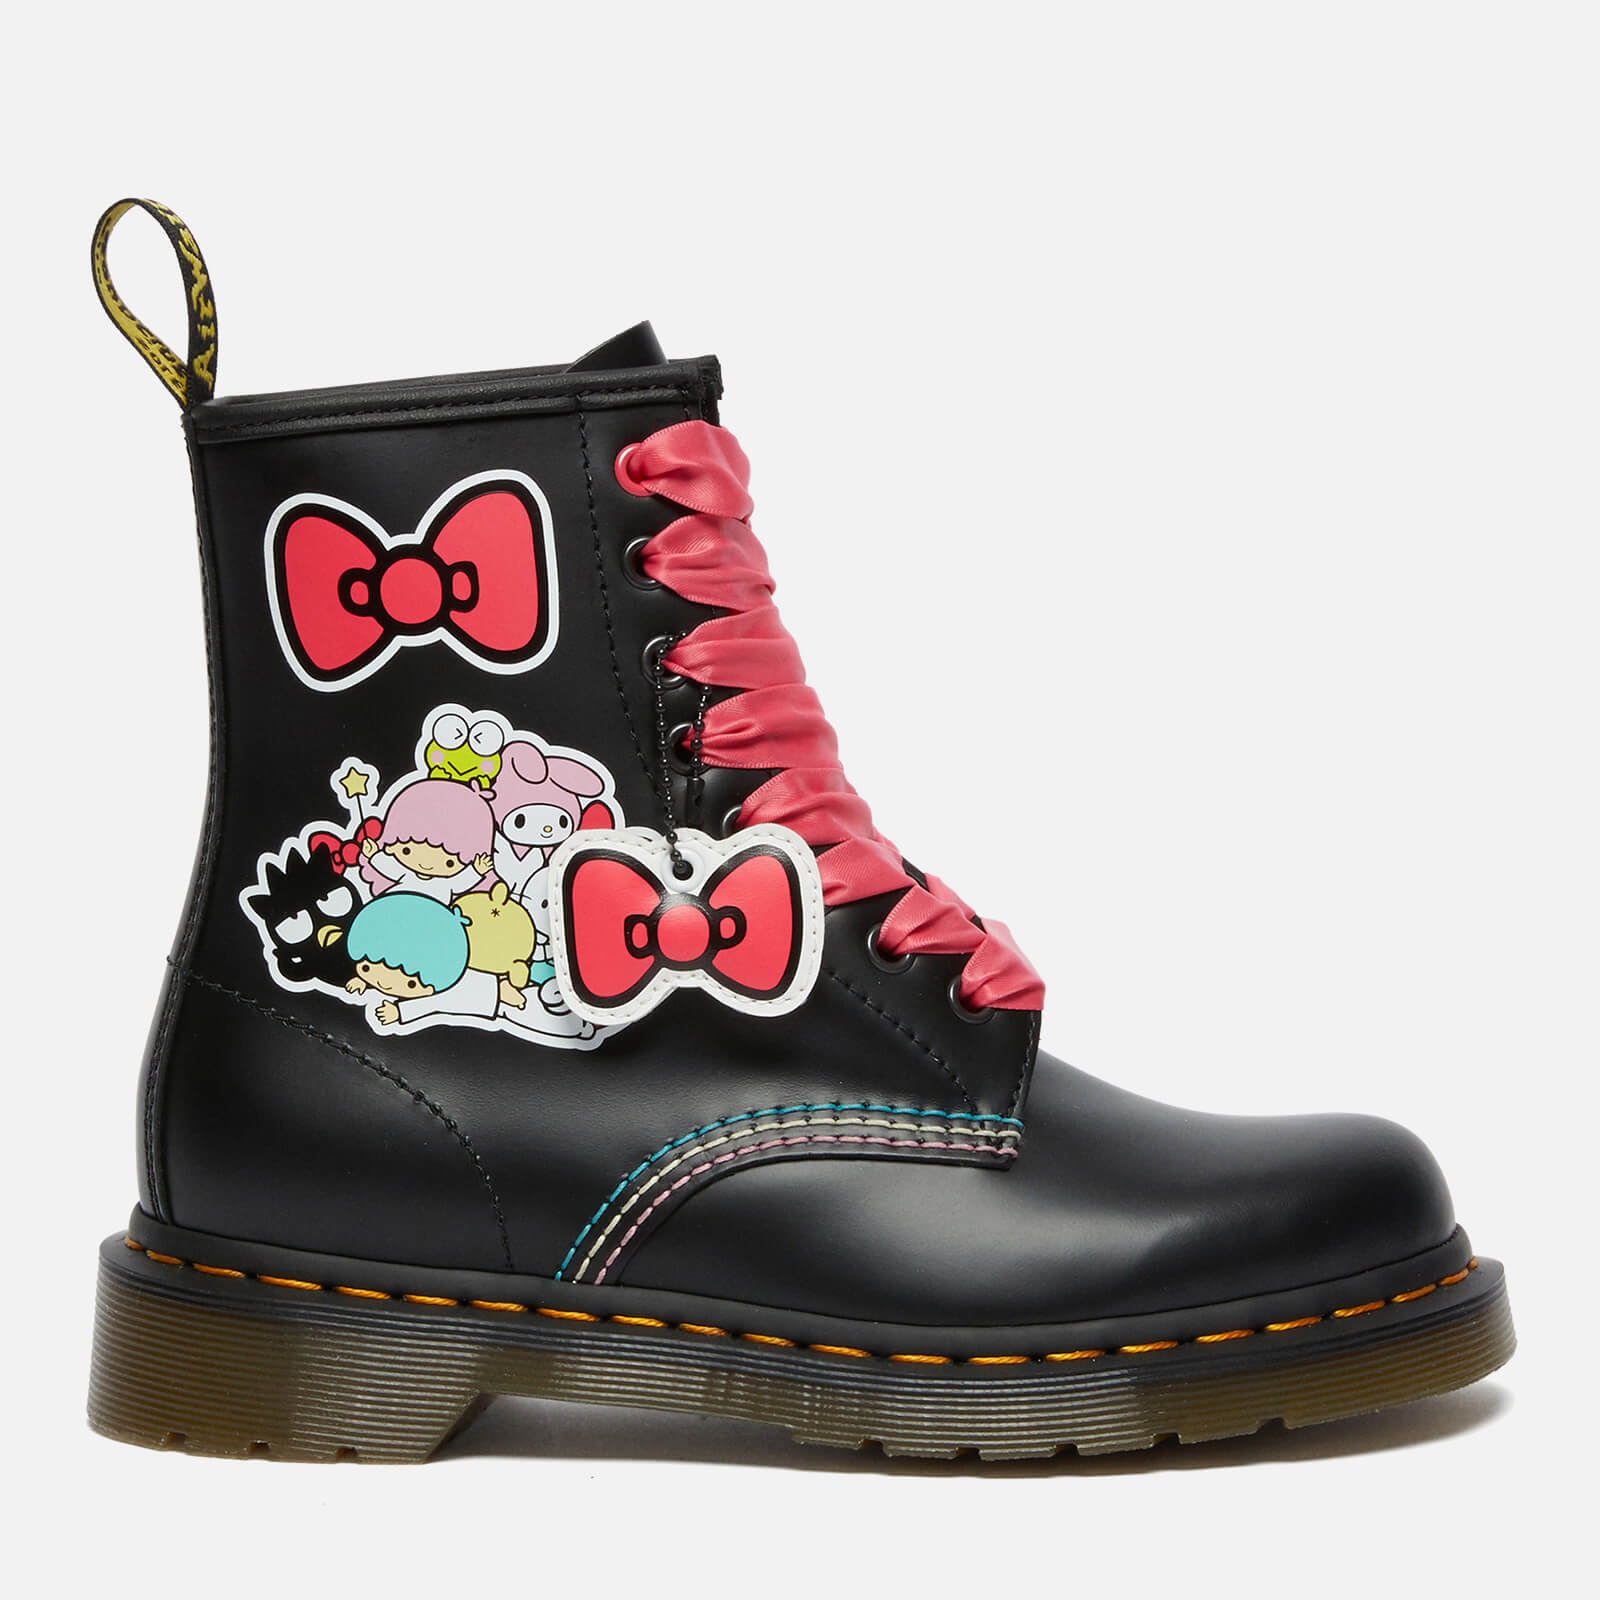 Dr. Martens X Hello Kitty Women's 1460 Leather Boots - Black - Uk 3